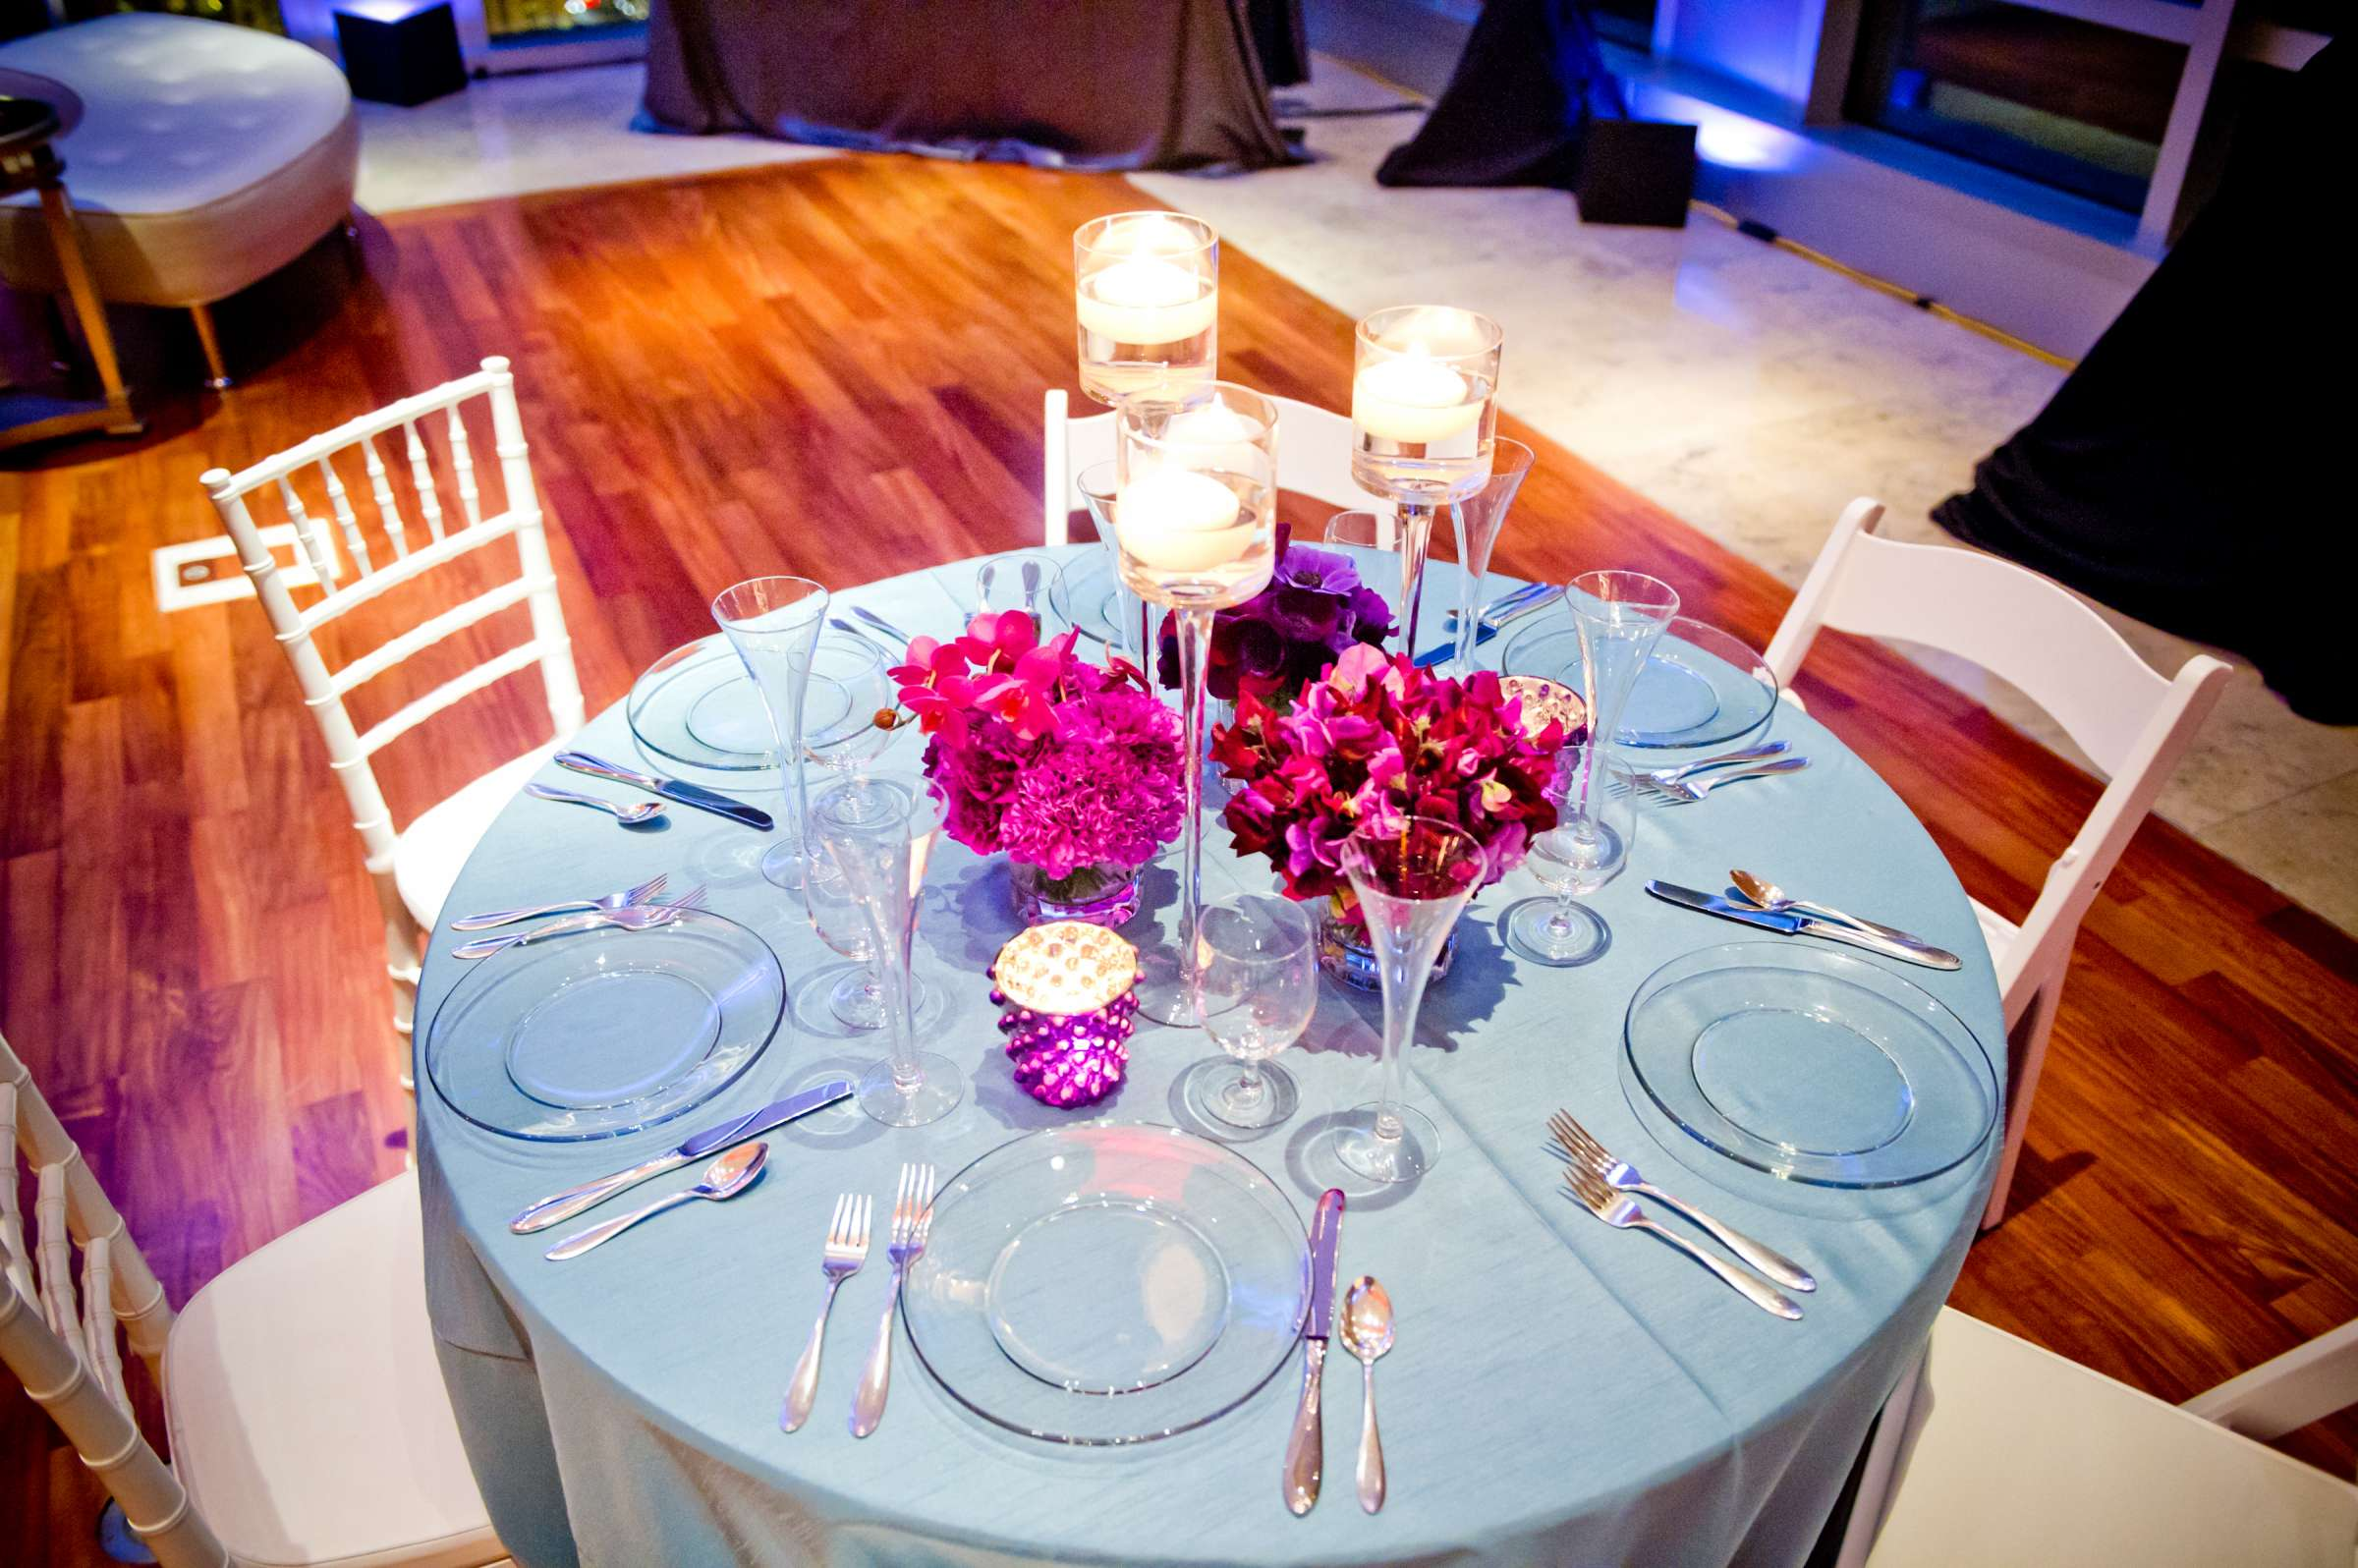 Ultimate Skybox Wedding coordinated by Creative Affairs Inc, Open House Wedding Photo #25 by True Photography